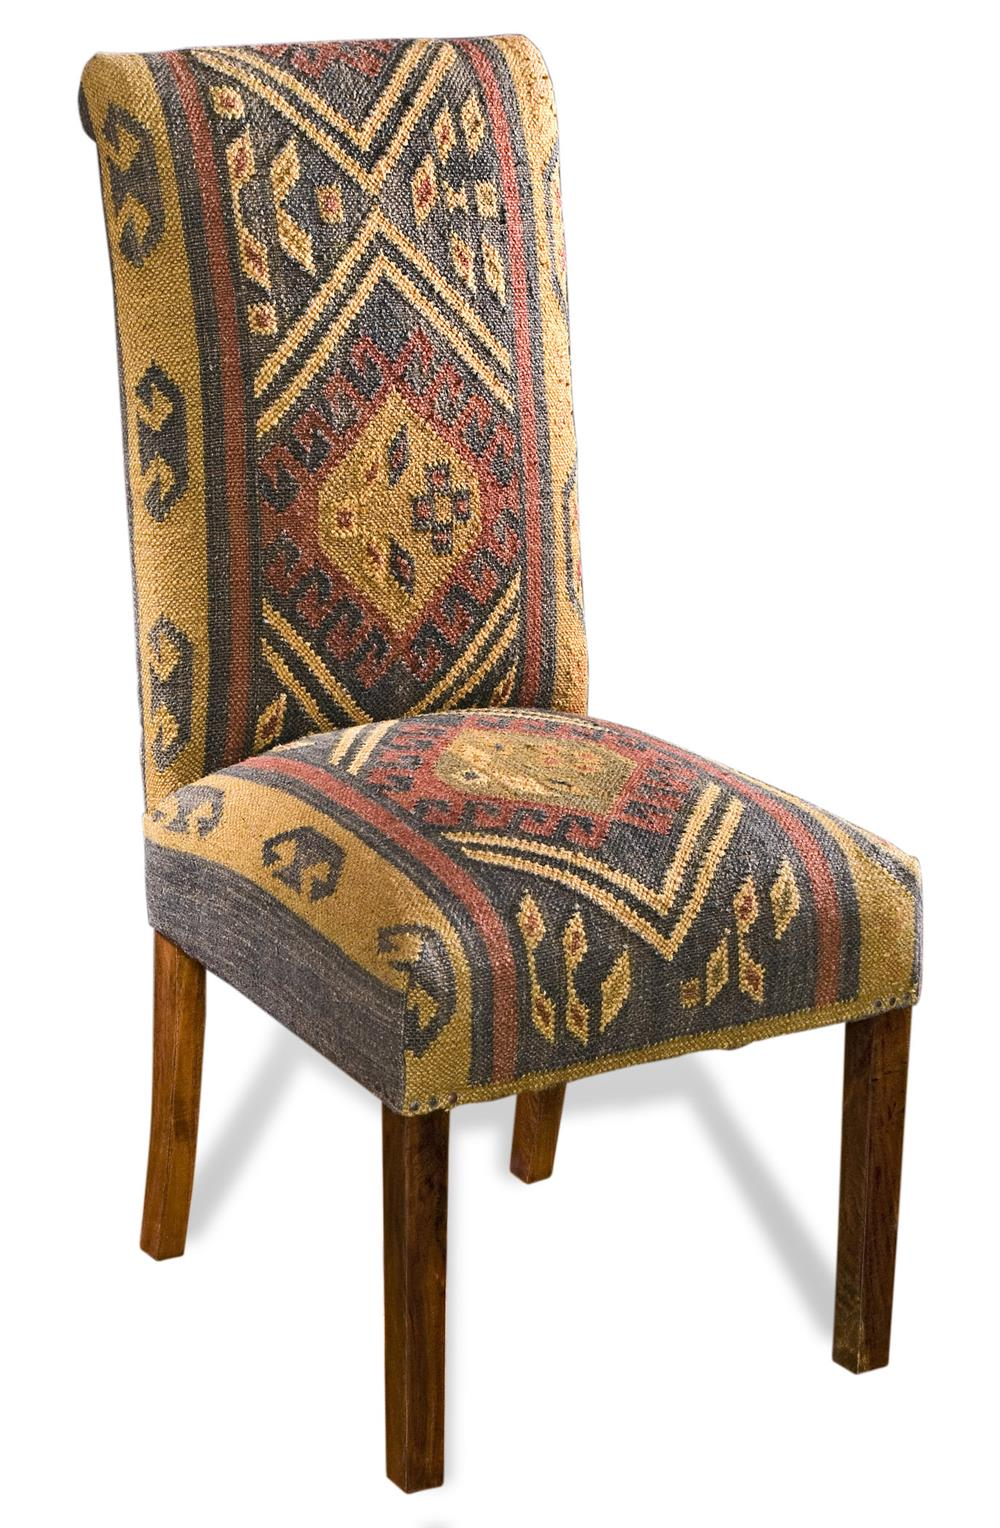 Copper Creek Rustic Cabin Woven Kilim Dining Chairs  : product348 from www.kathykuohome.com size 1000 x 1528 jpeg 233kB